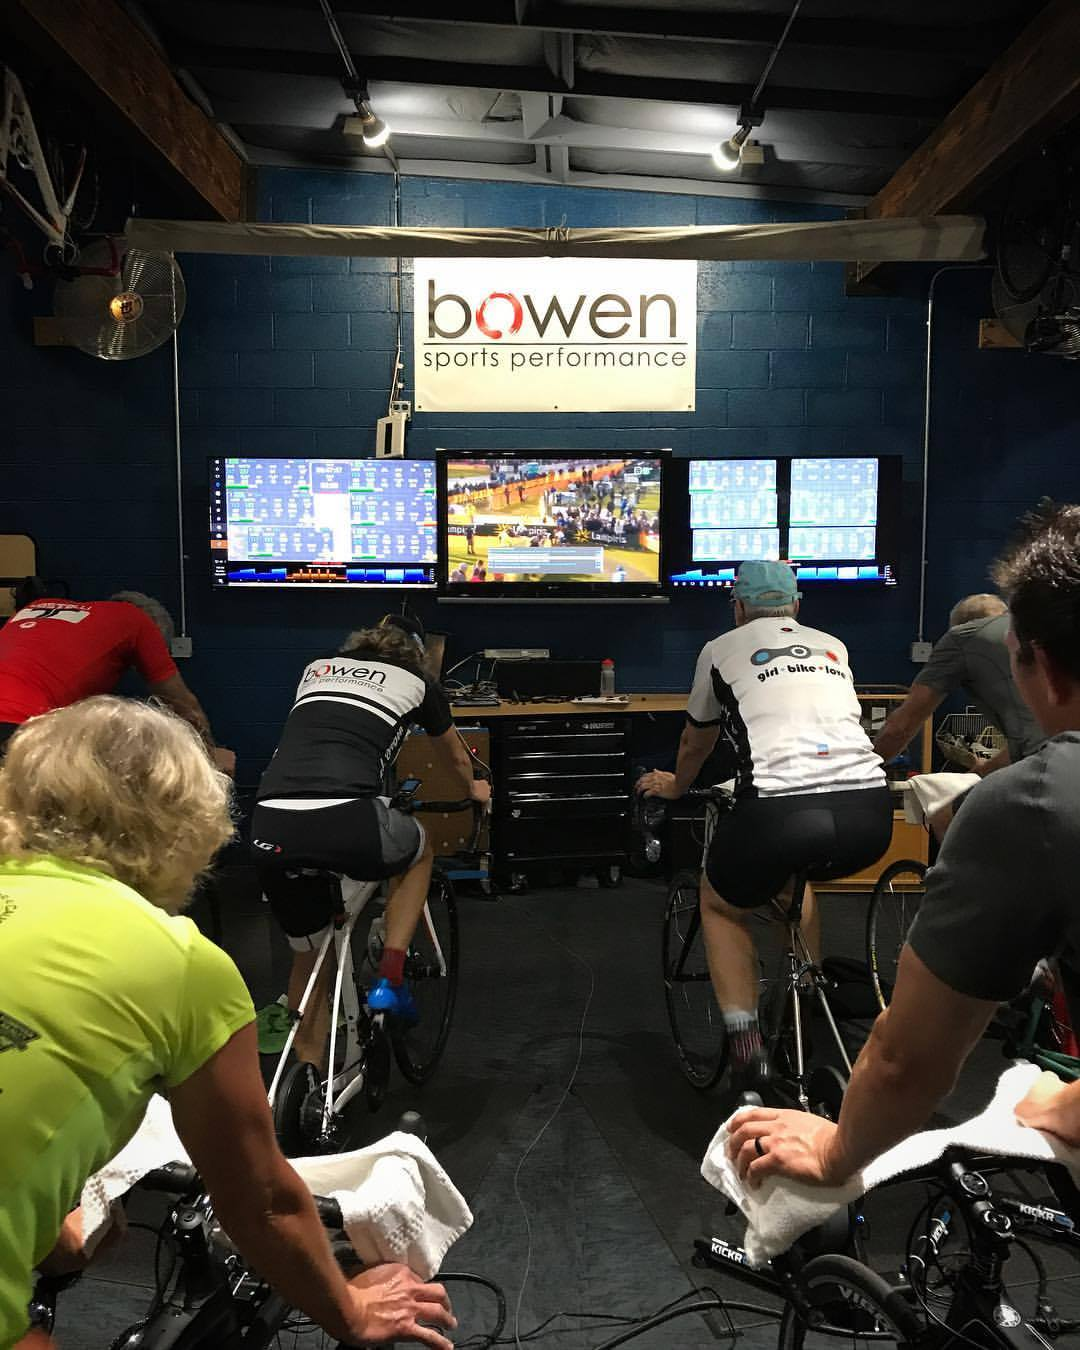 Regular group workouts happen at Bowen Sports Performance almost every day of the week.